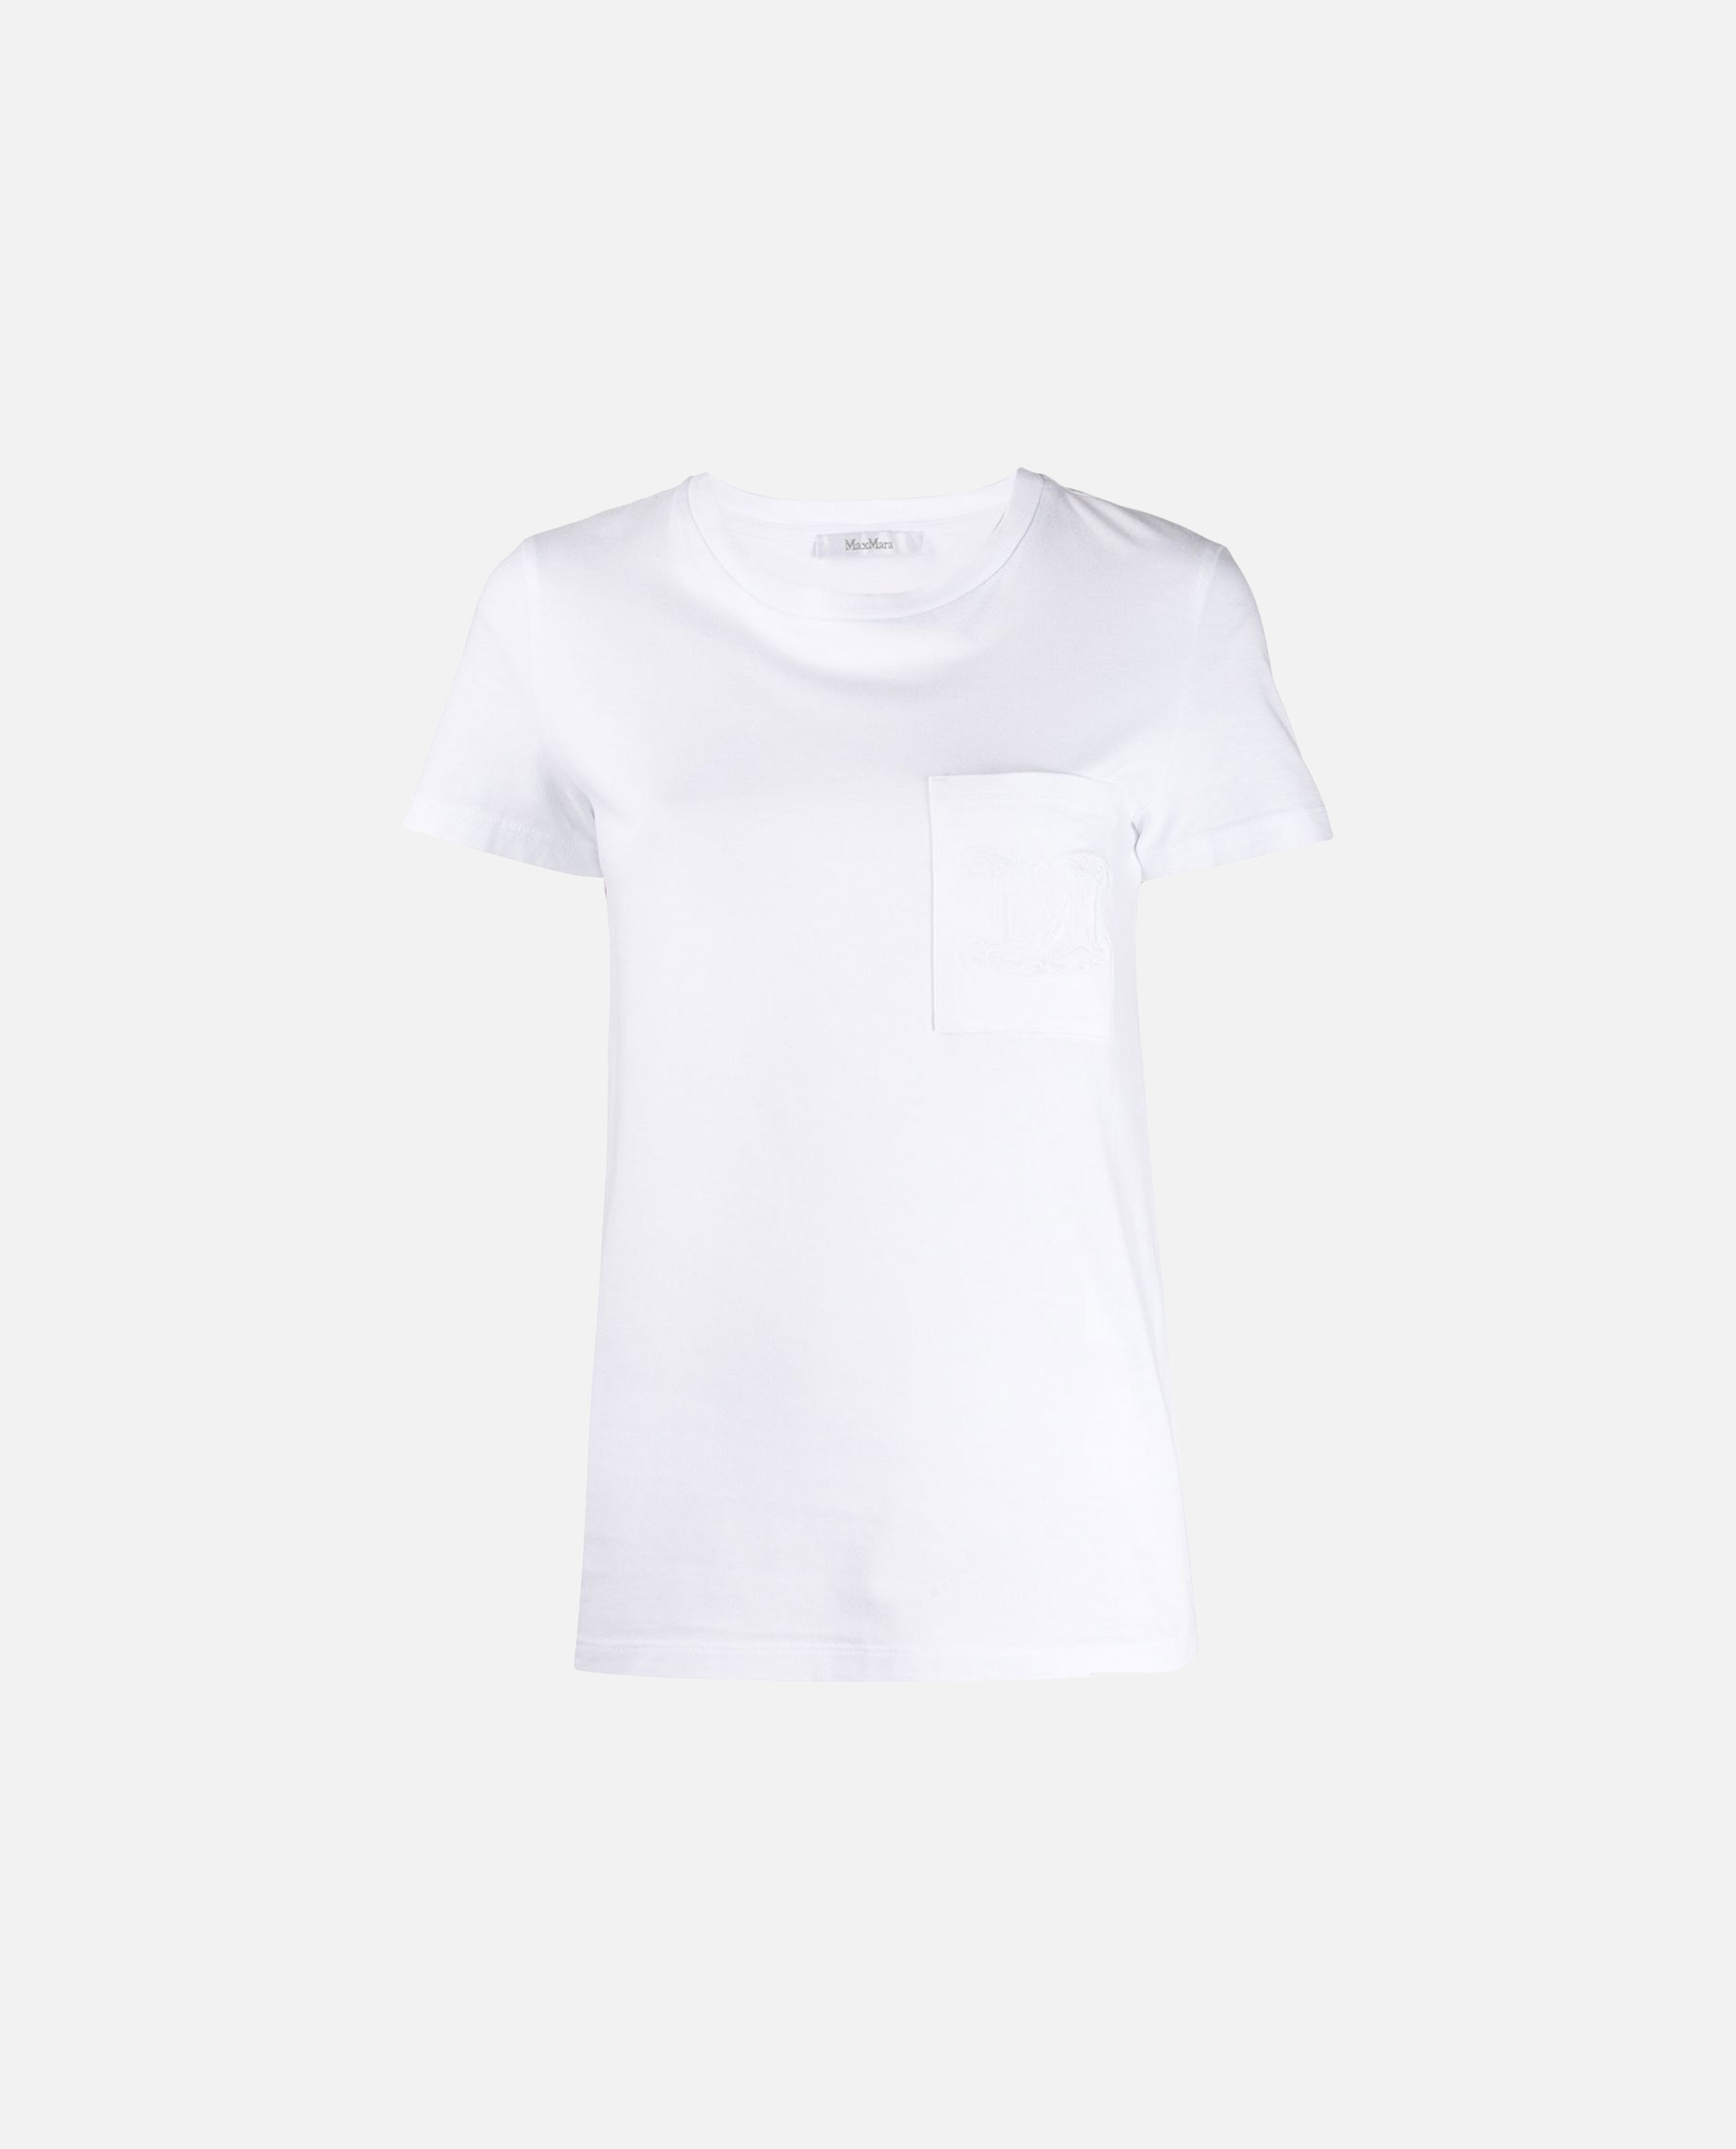 Cotton T-shirt Women Max Mara 000226260033459 1